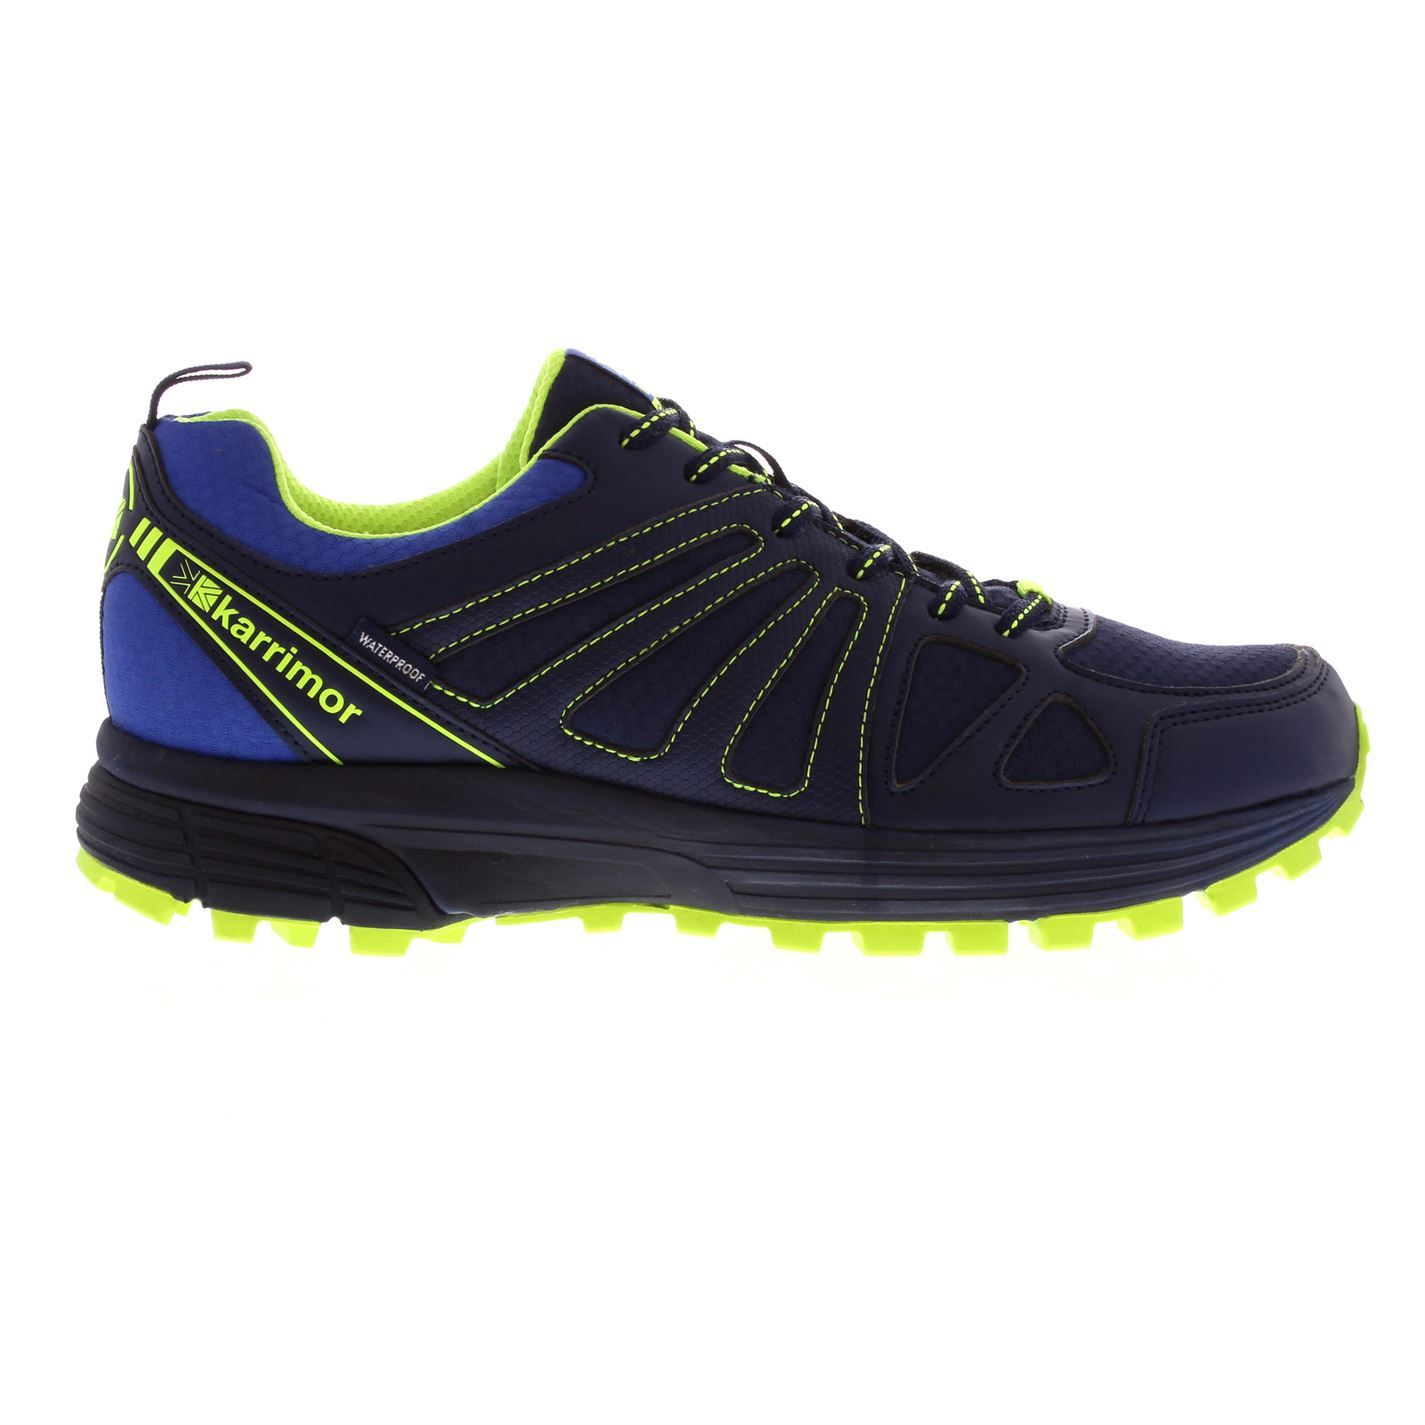 Waterproof Trail Running Shoes Amazon